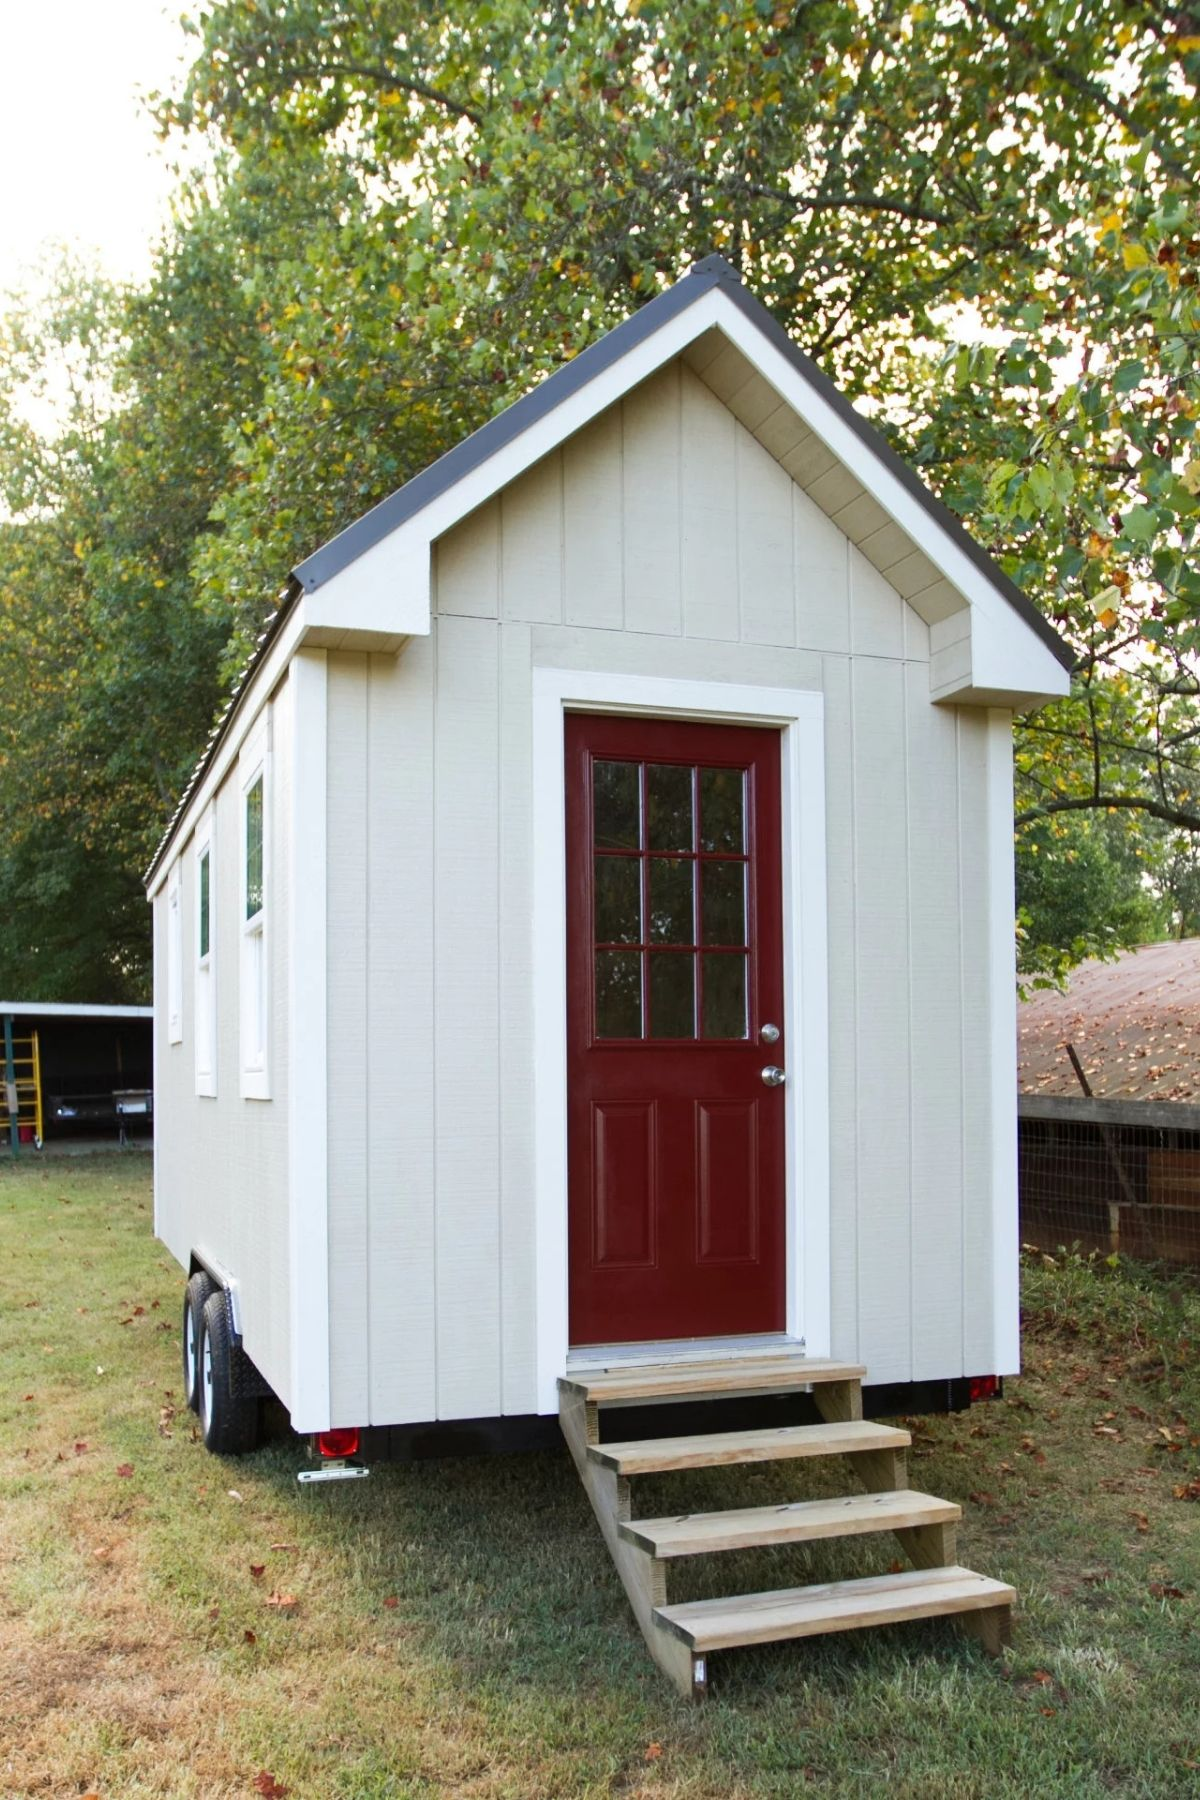 White tiny home with wood steps and red door